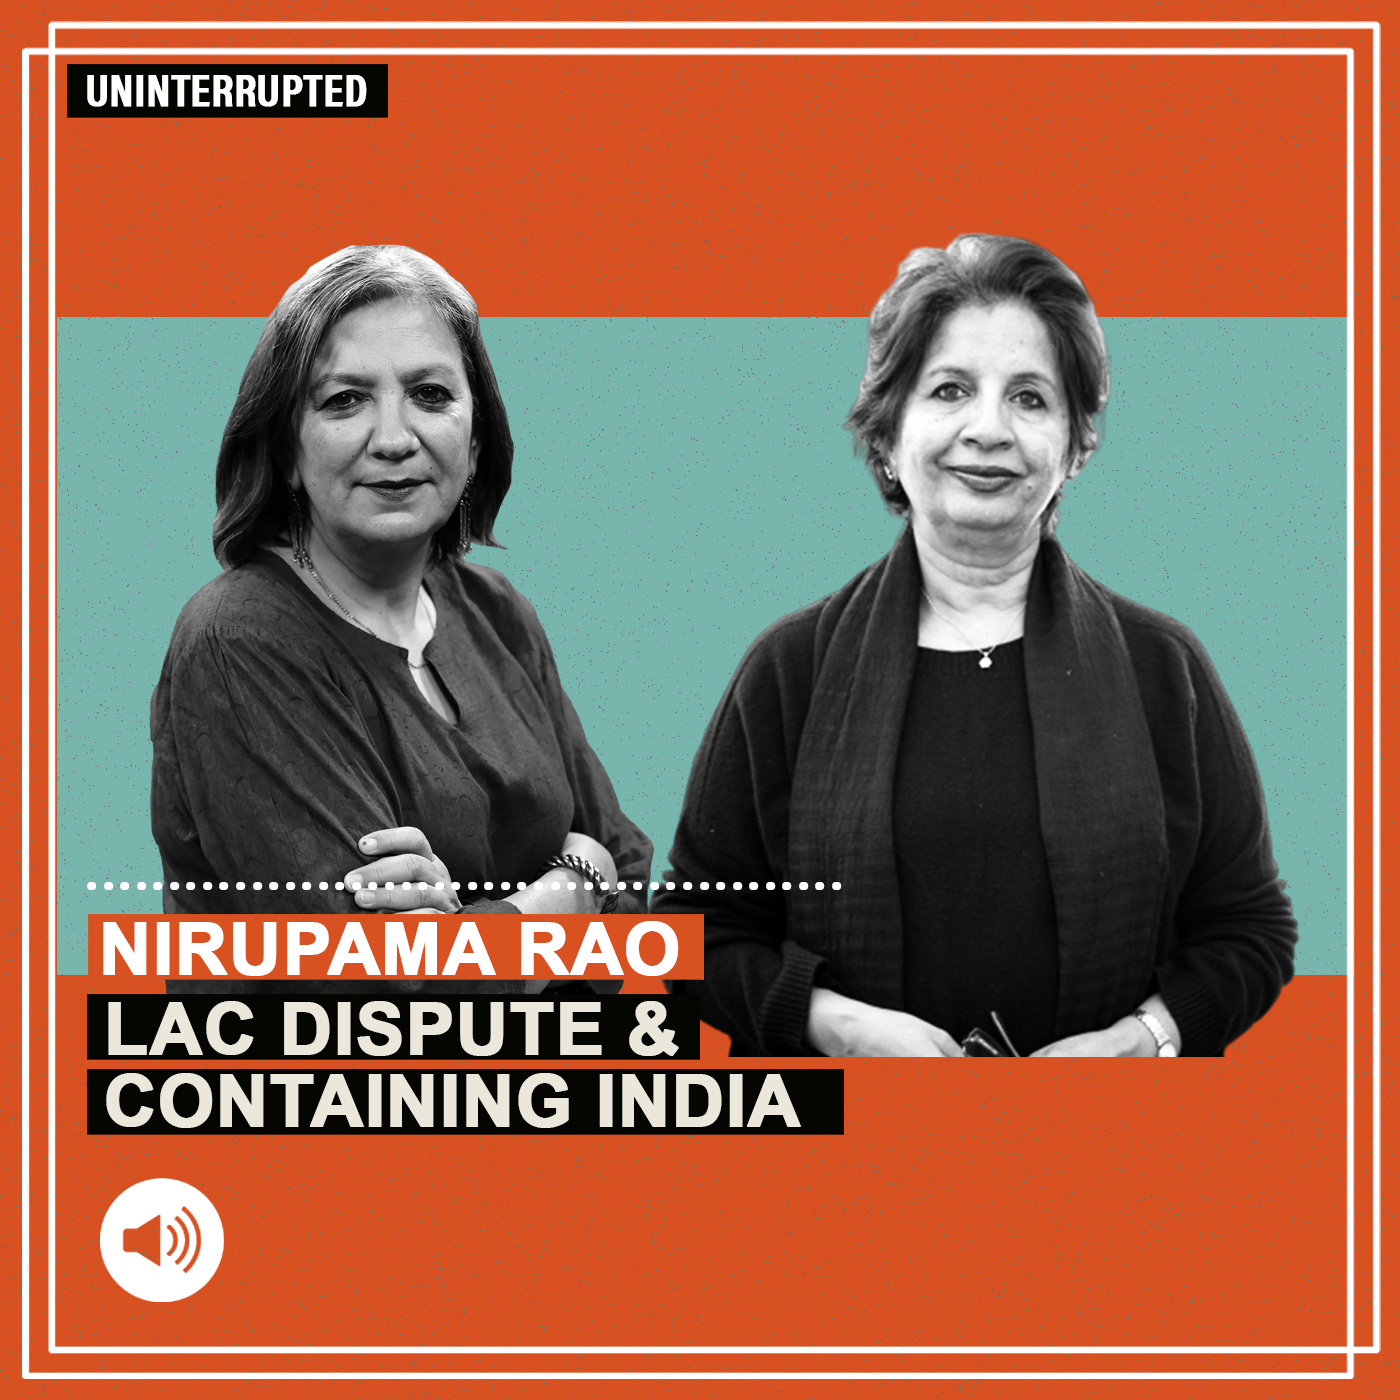 ThePrint Uninterrupted: Sit down like grown-ups, look at pockets of differences on LAC & resolve them : Nirupama Rao